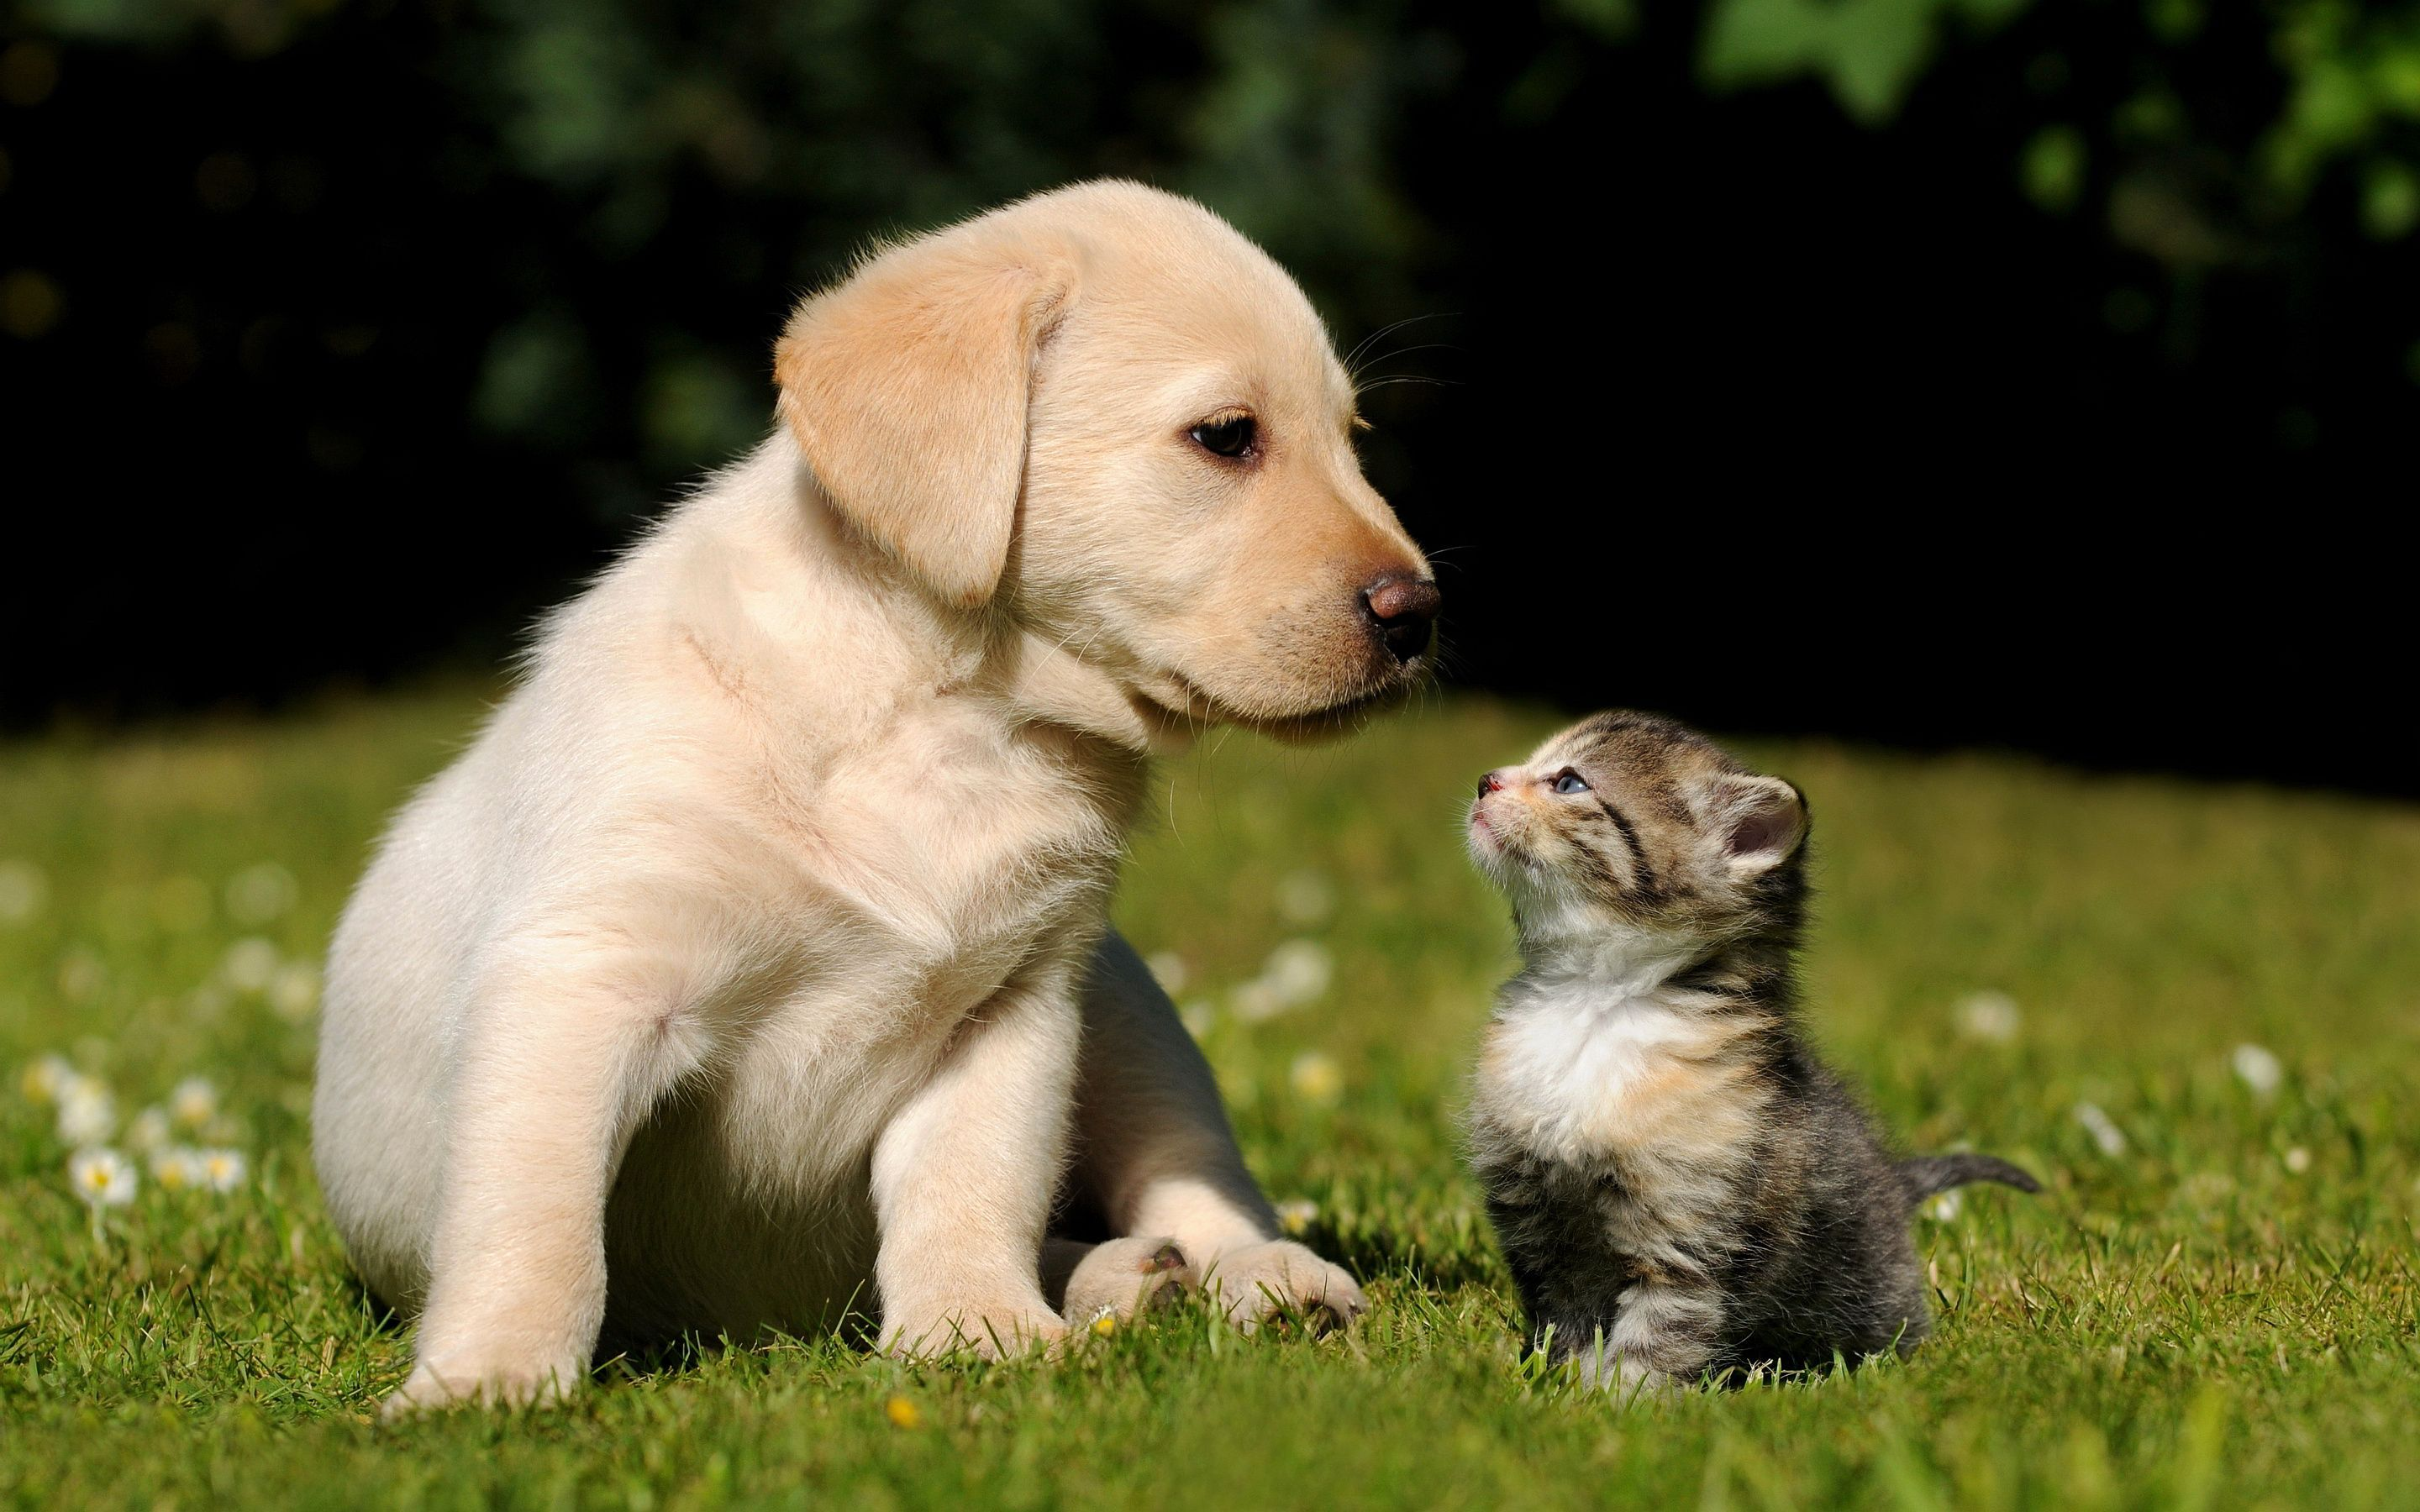 2880x1800 - Cute Puppy and Kitten 32